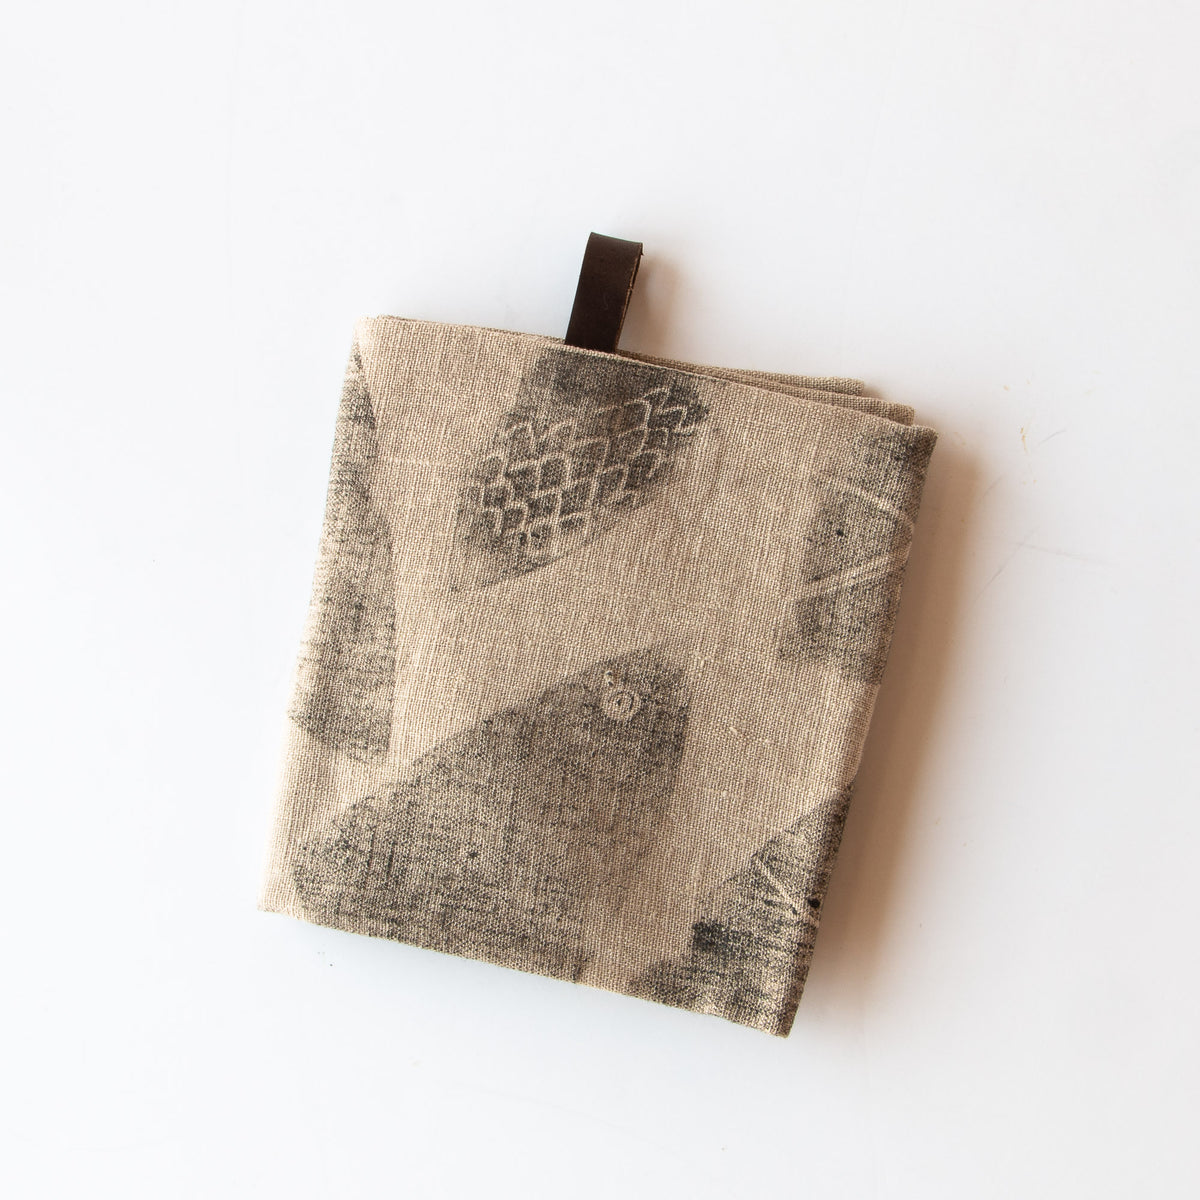 Gone Fishing - Folded Handprinted 100% Linen Dish Cloth / Hand Towel - Sold by Chic & Basta